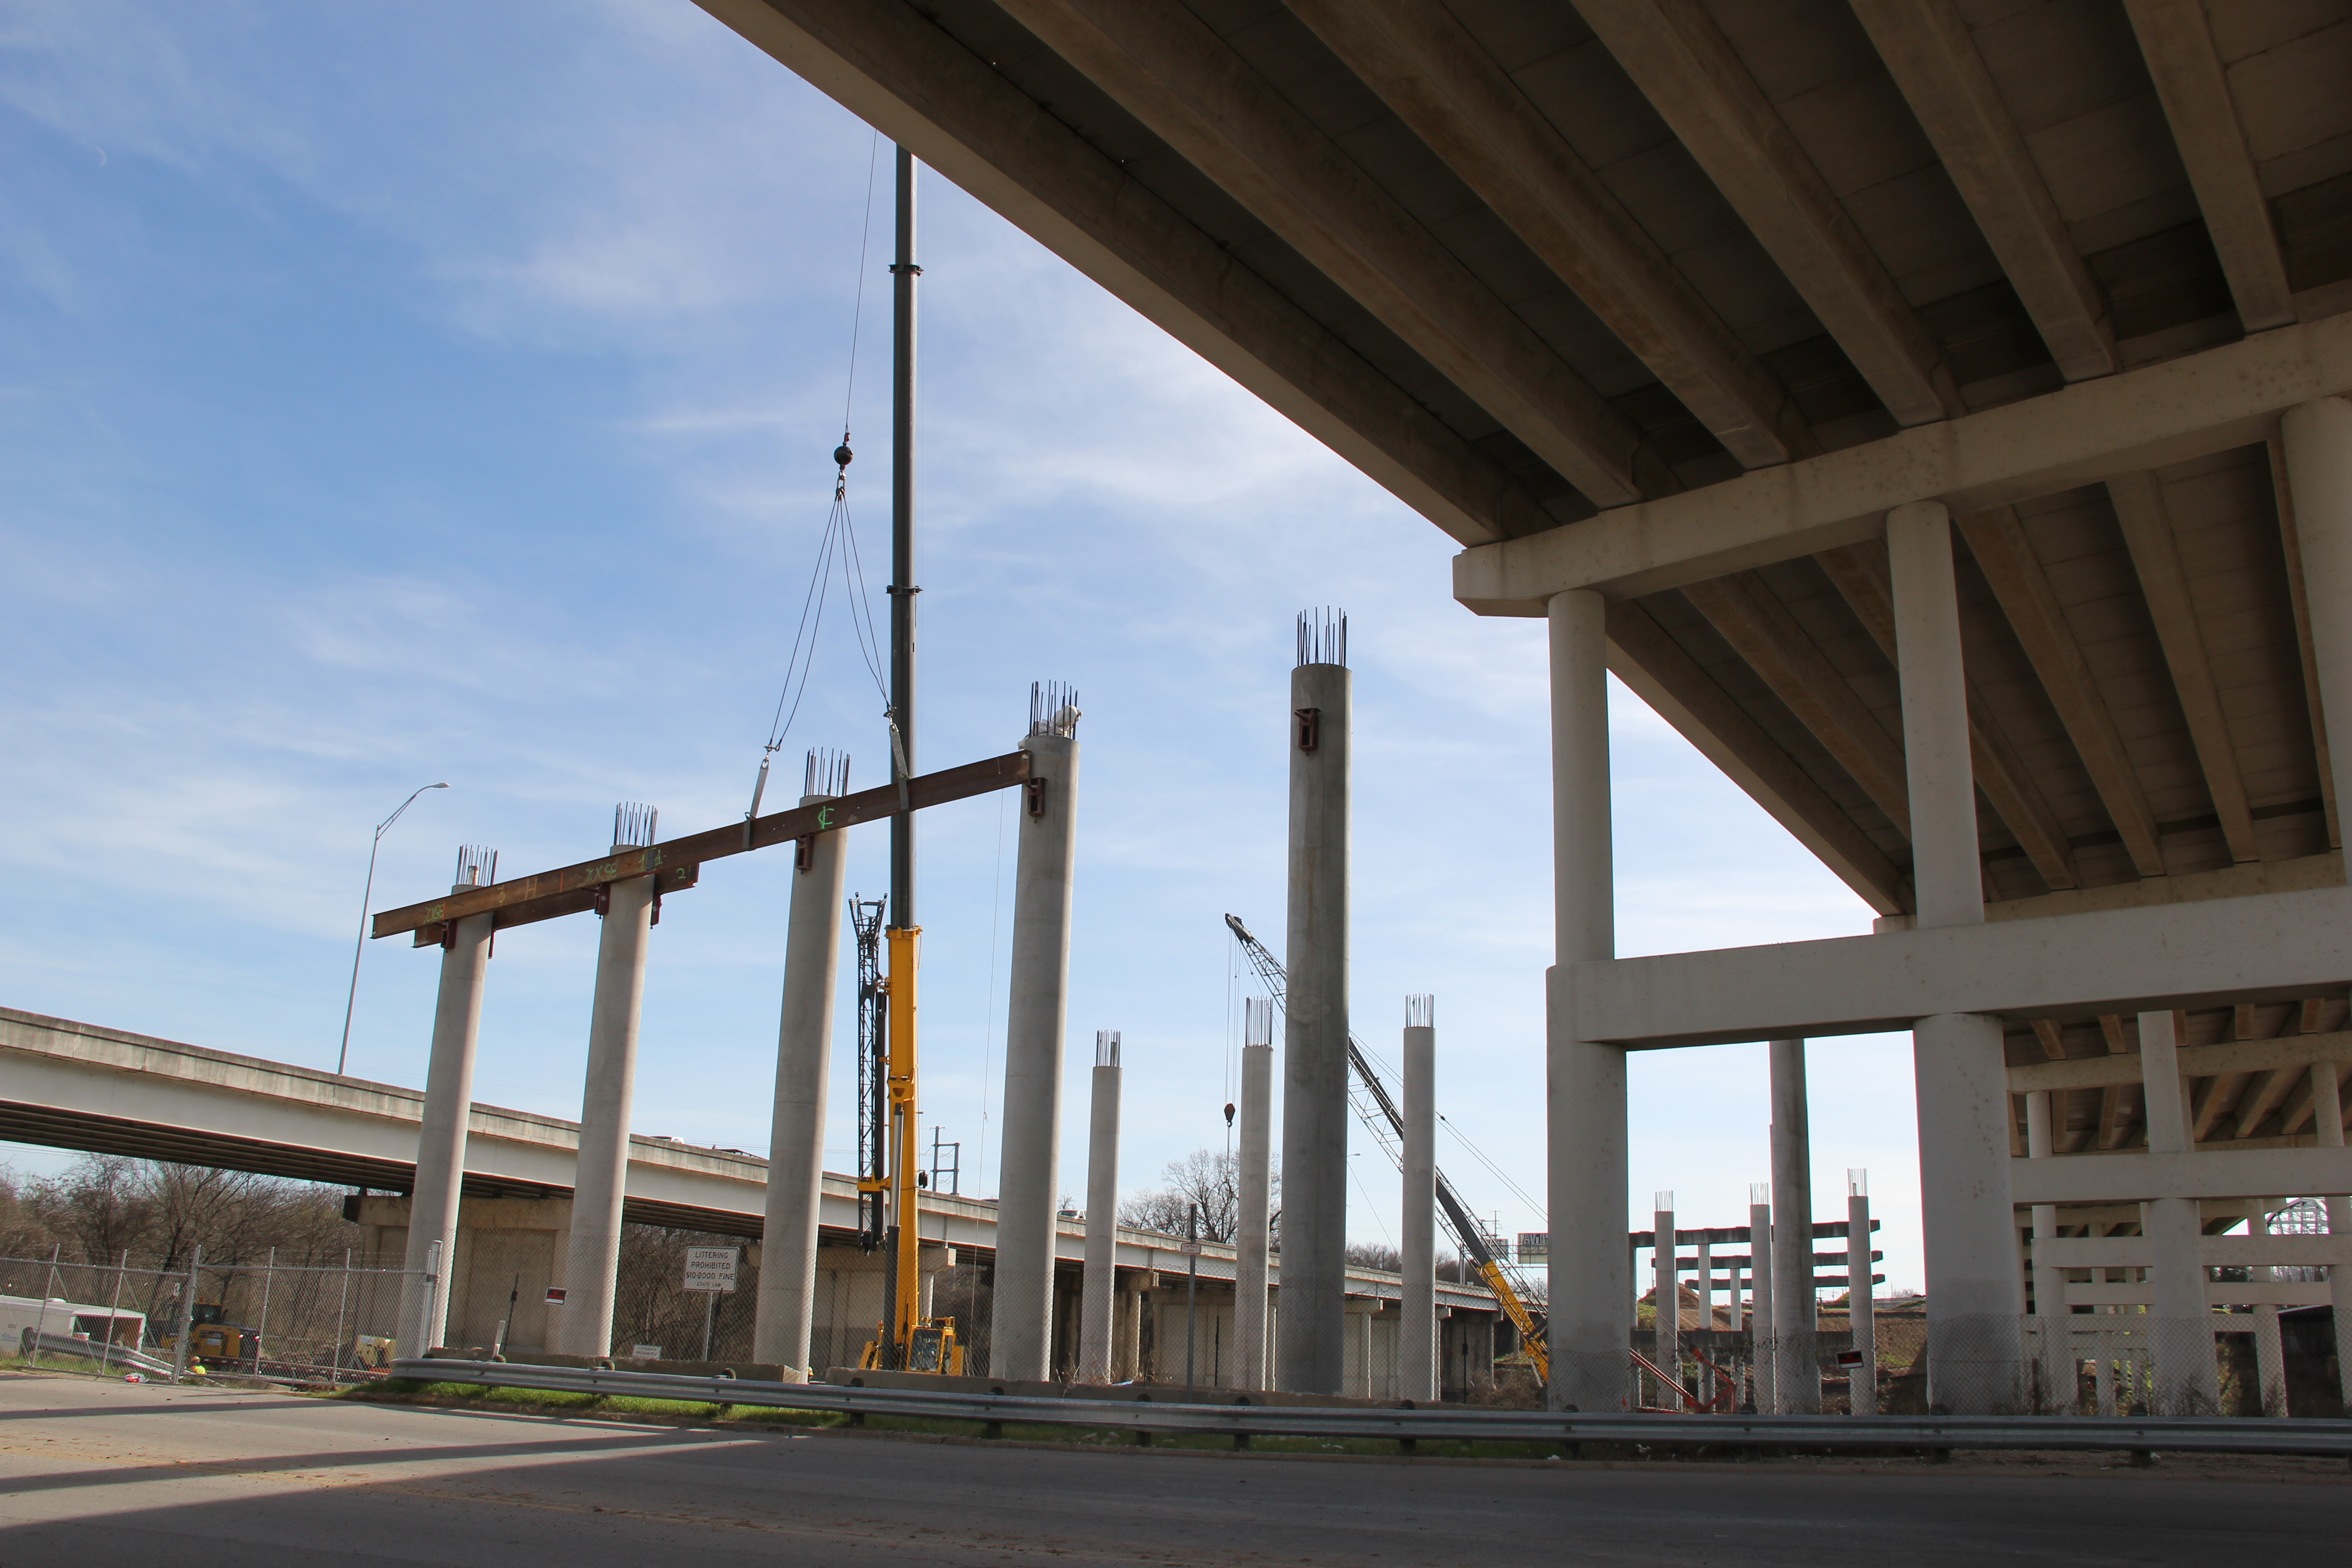 Bridge column construction at Colorado River crossing